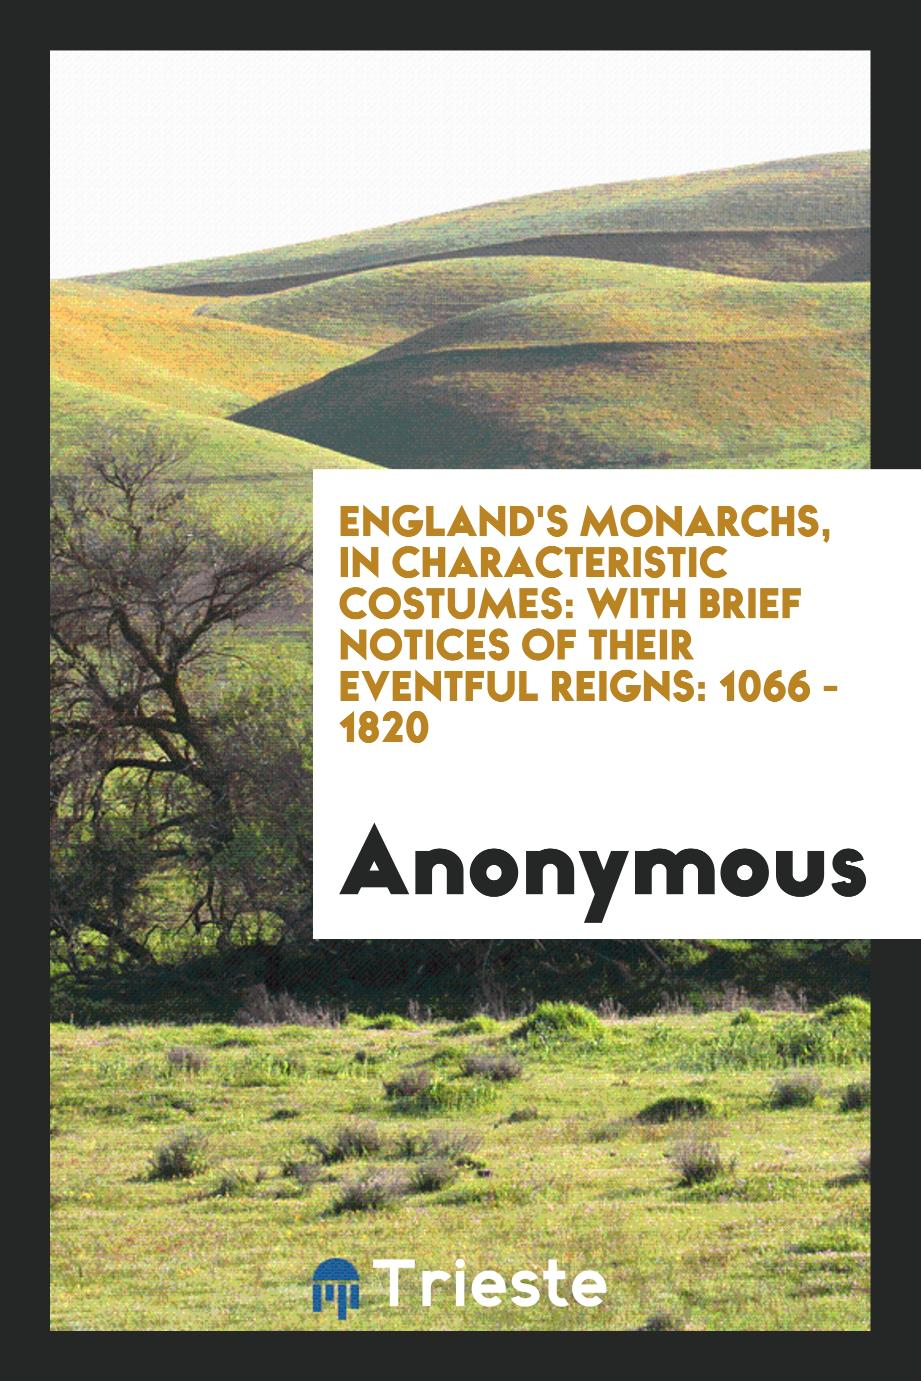 England's Monarchs, in Characteristic Costumes: With Brief Notices of Their Eventful reigns: 1066 - 1820